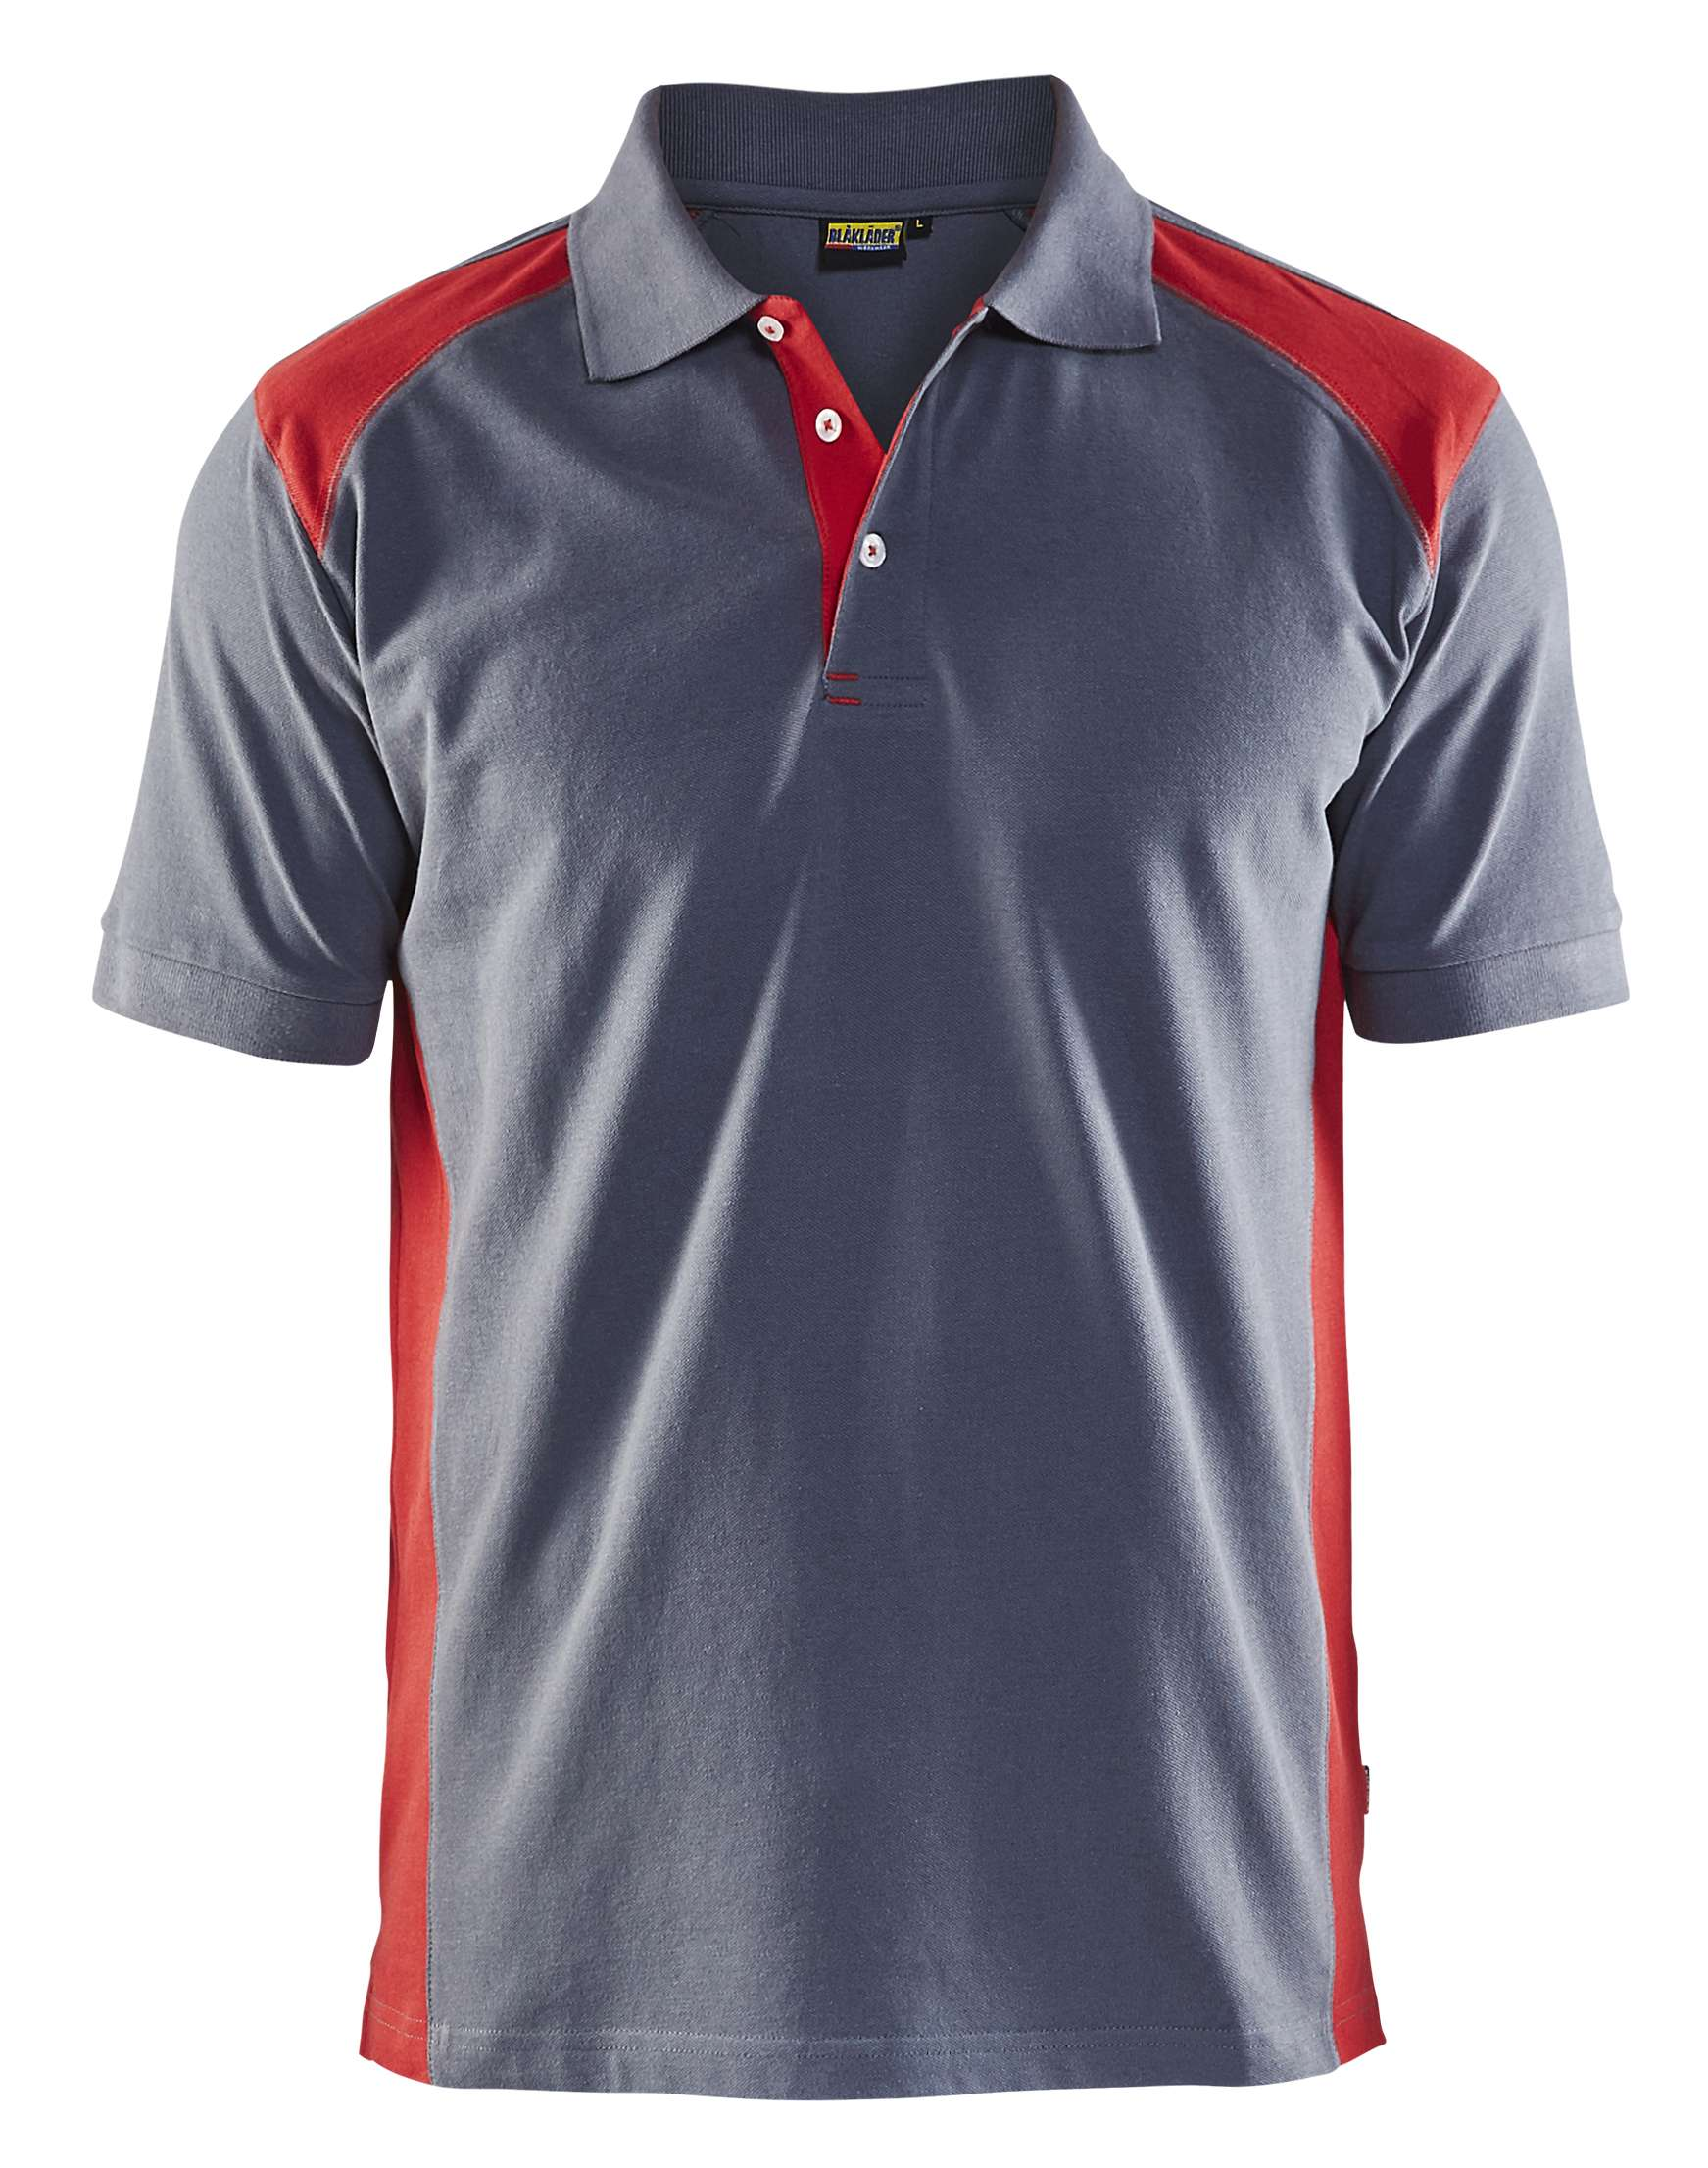 Blaklader Polo shirts 33241050 grijs-rood(9456)